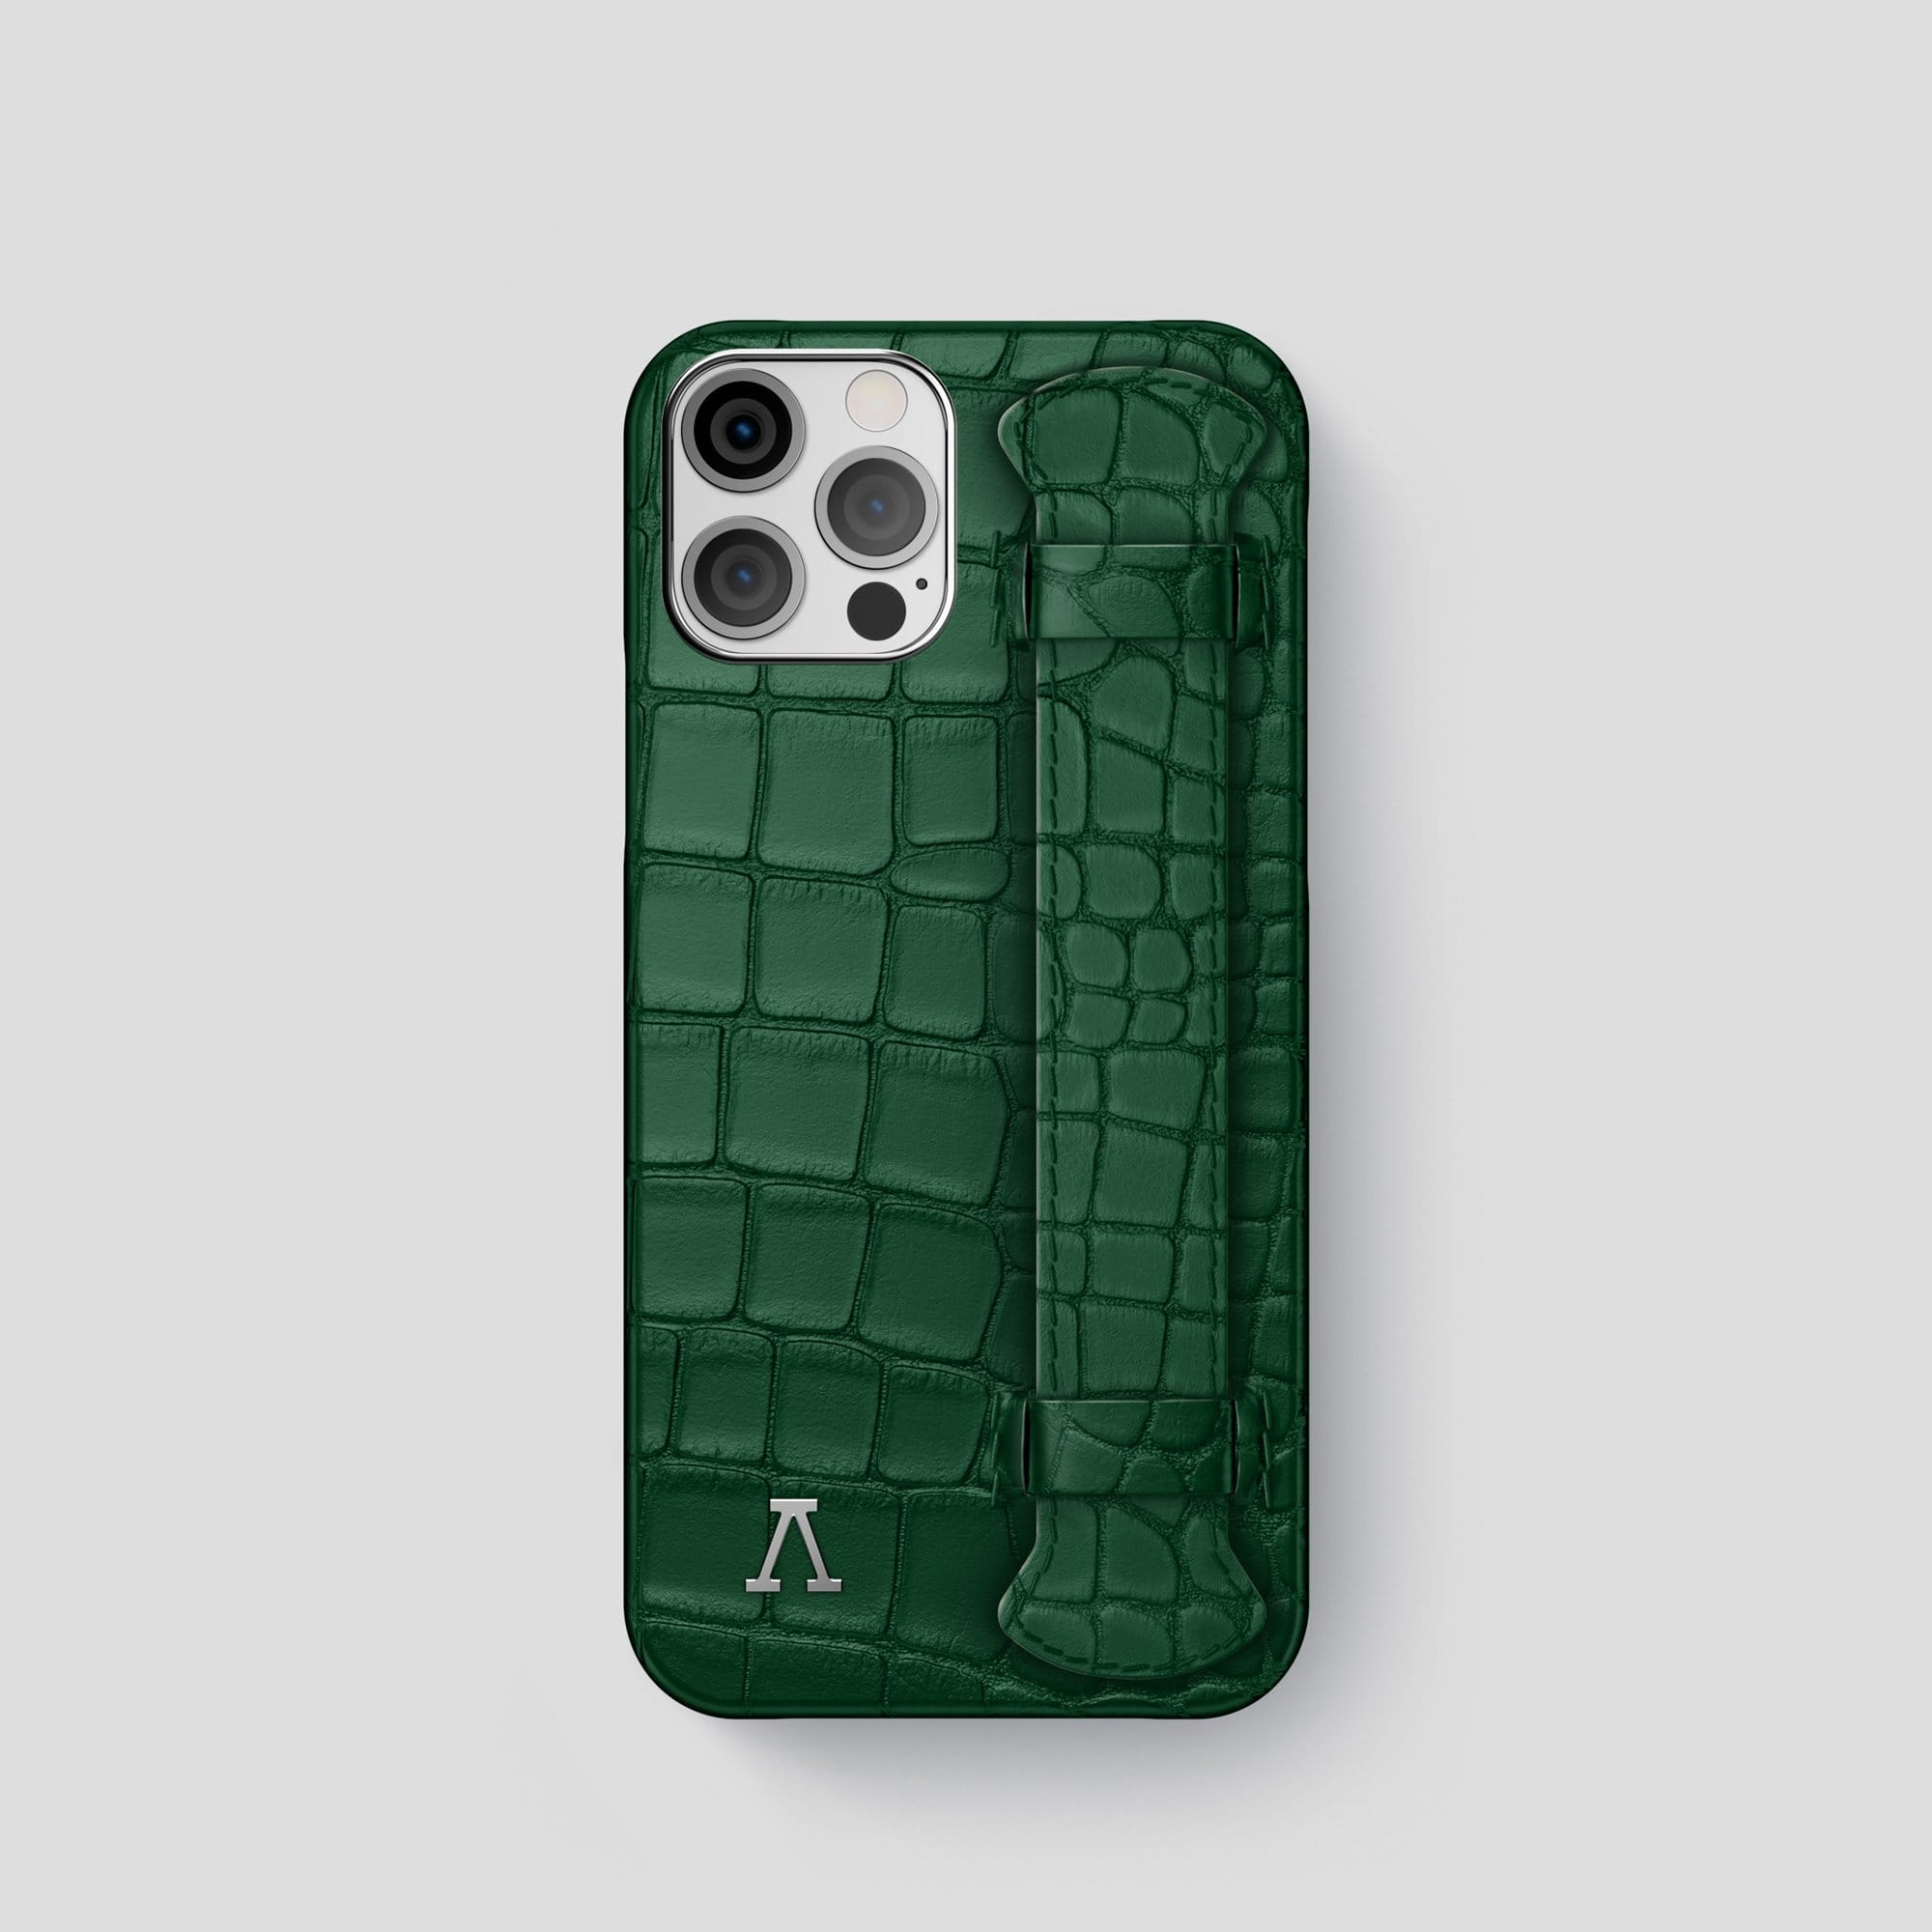 iPhone 12 Pro Strap Case Alligator